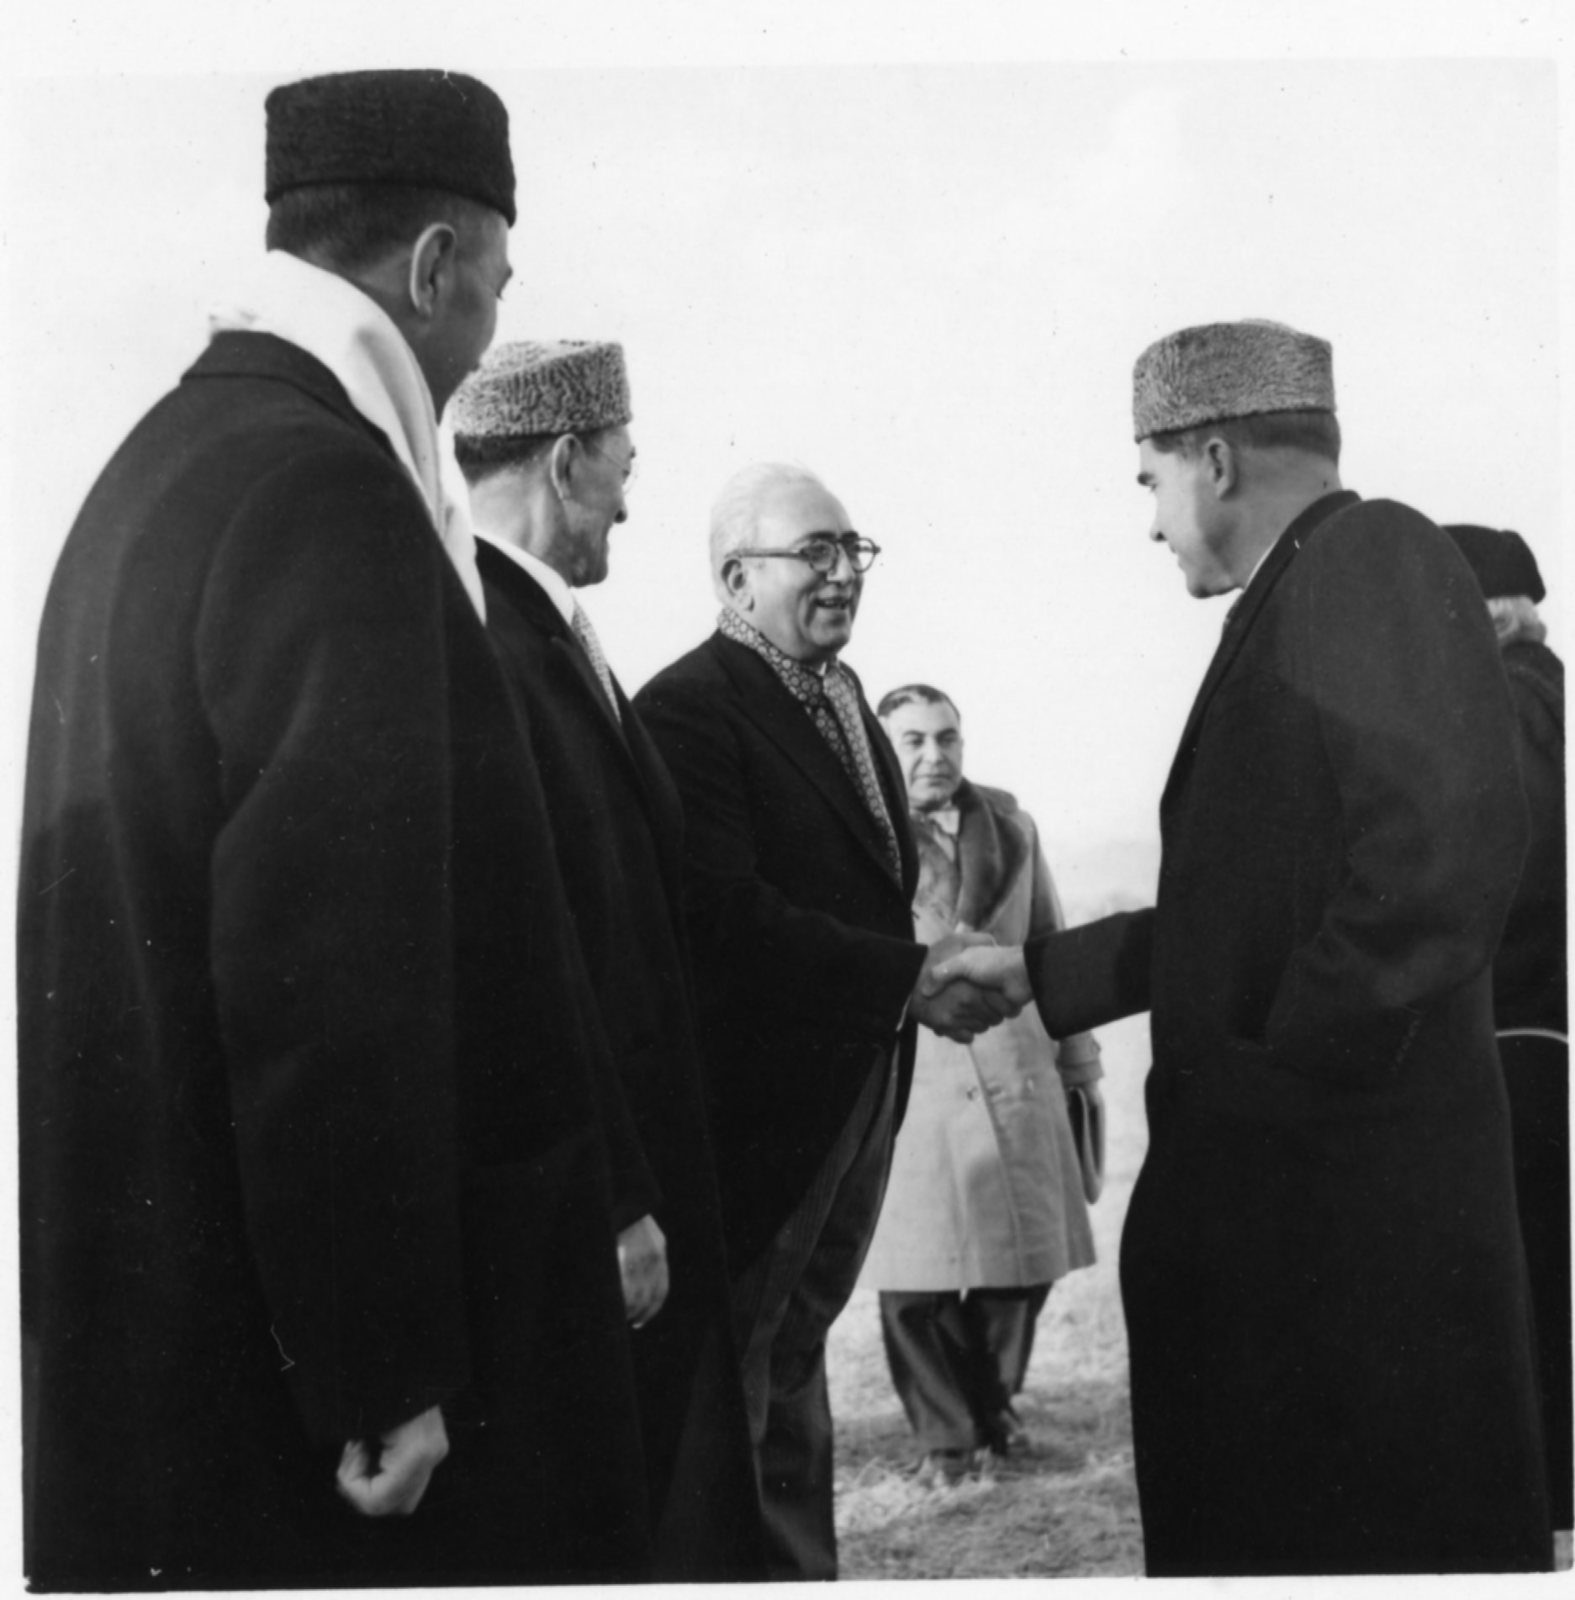 Vice President Richard Nixon shakes hands with officials in Afghanistan